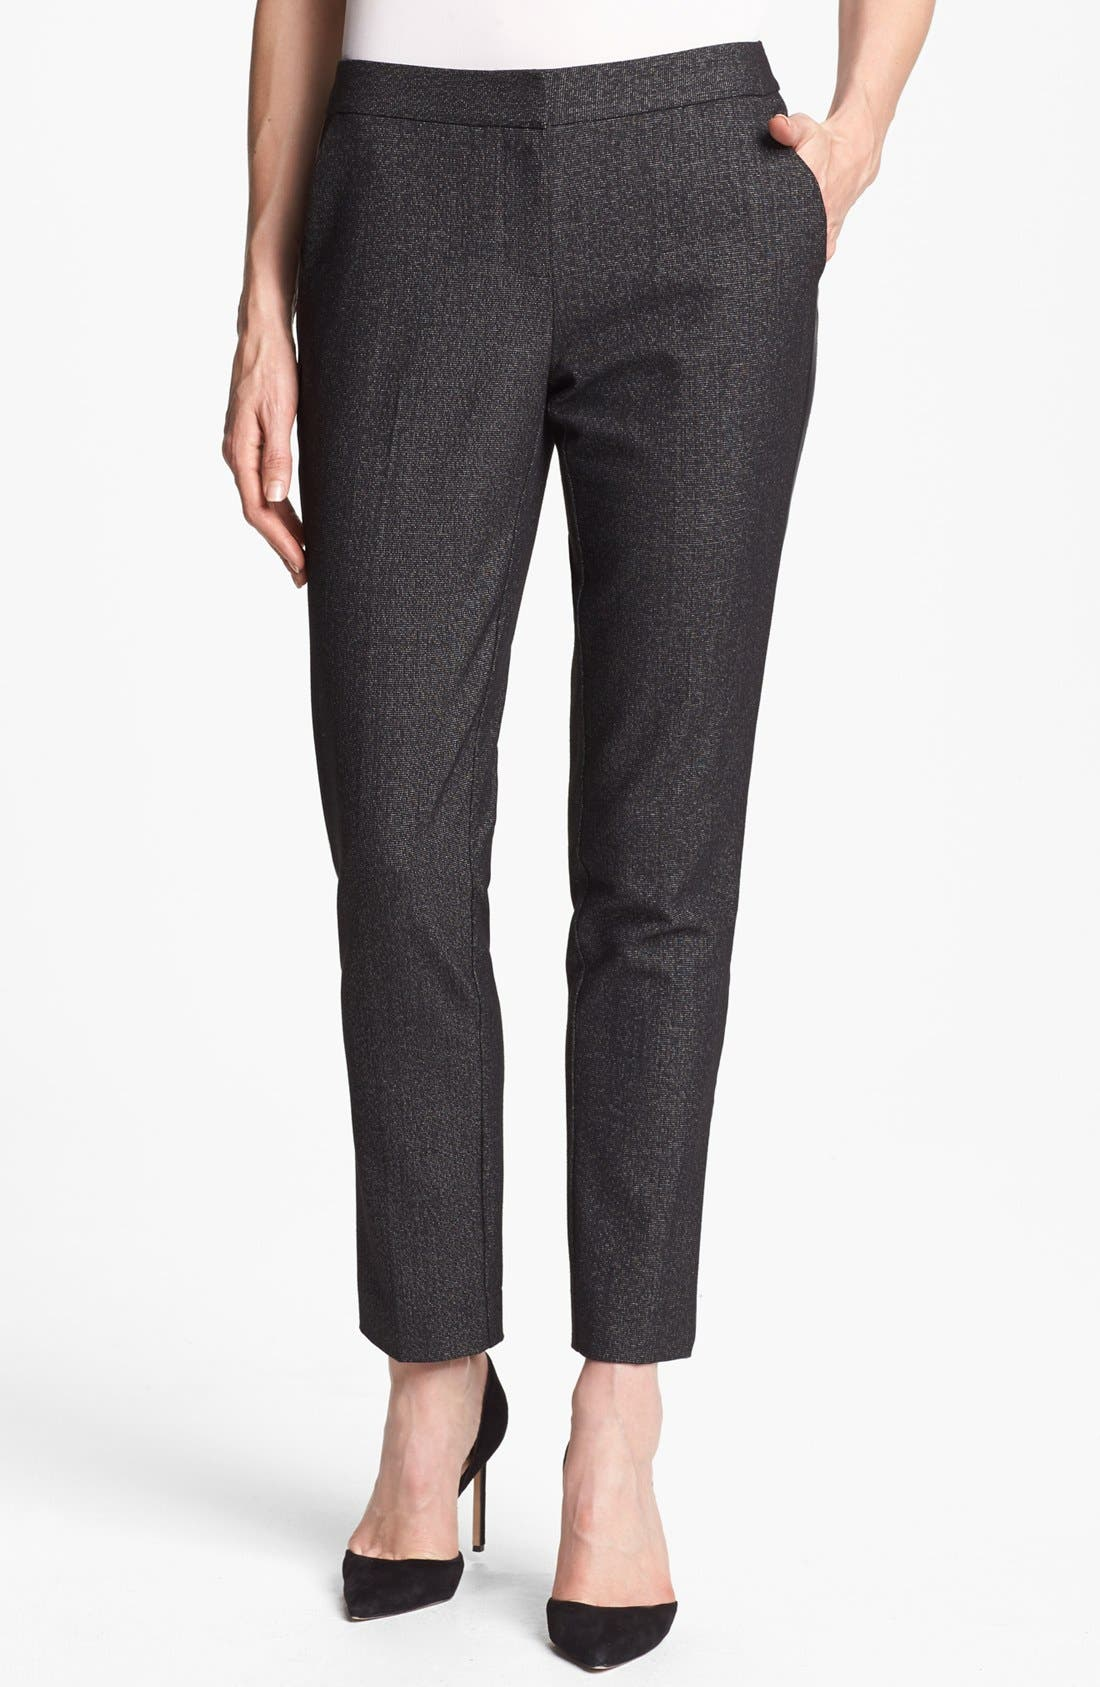 Alternate Image 1 Selected - Vince Camuto Faux Leather Tuxedo Stripe Pants (Petite)